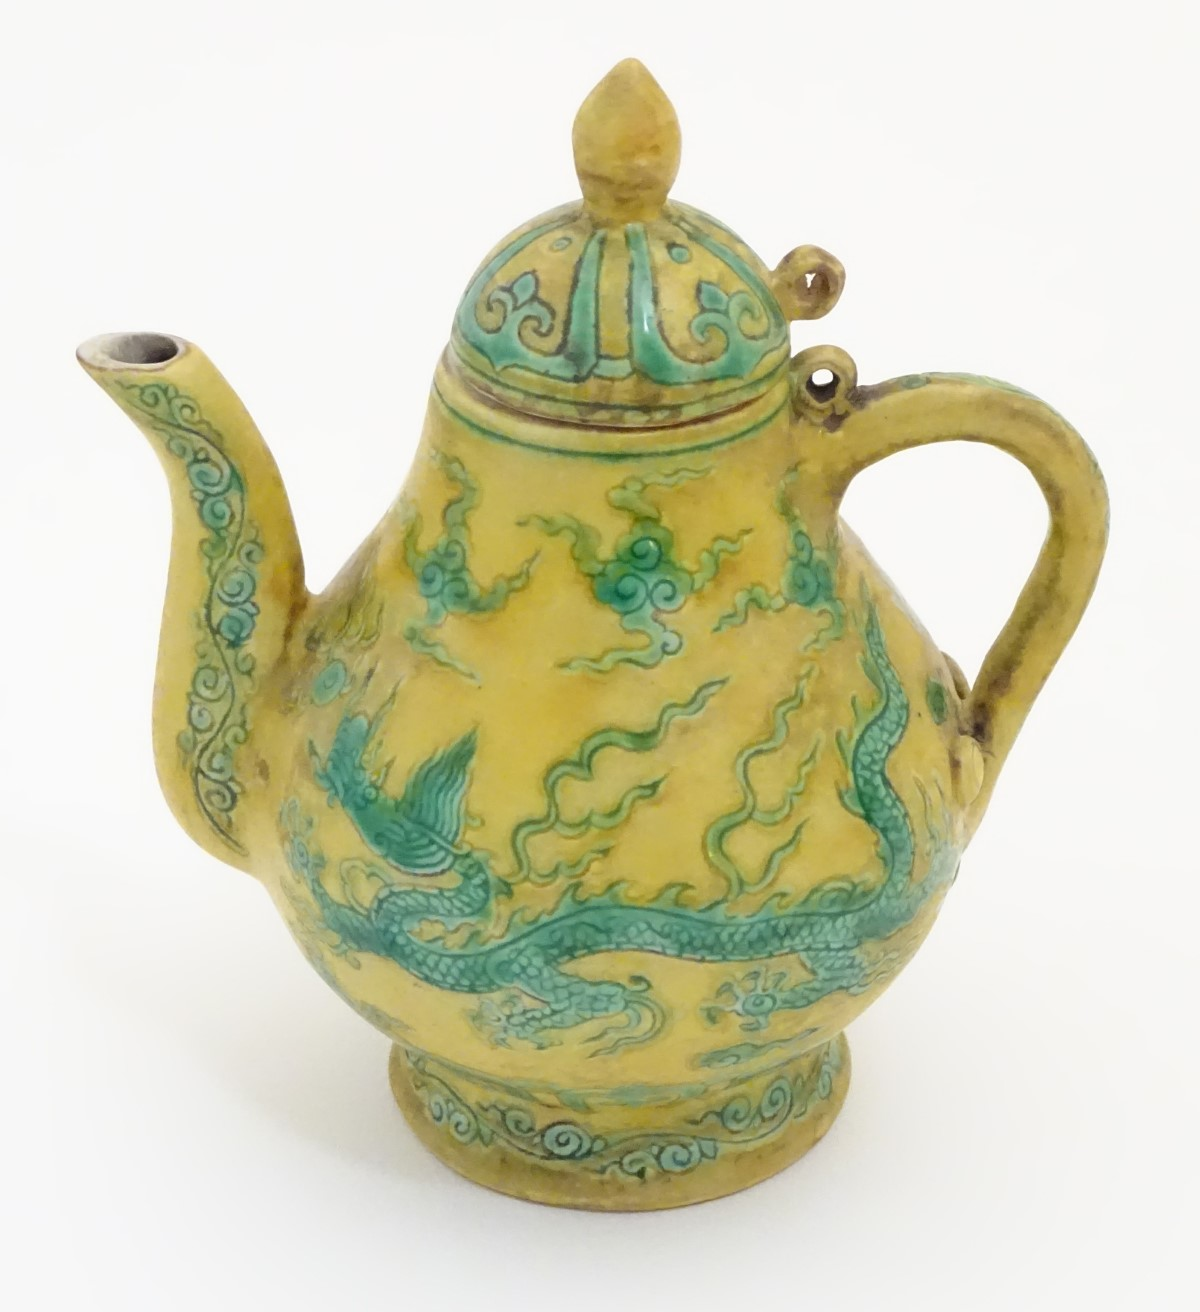 Lot 4 - A Chinese yellow ground small proportion lidded wine ewer decorated with green stylised dragons and